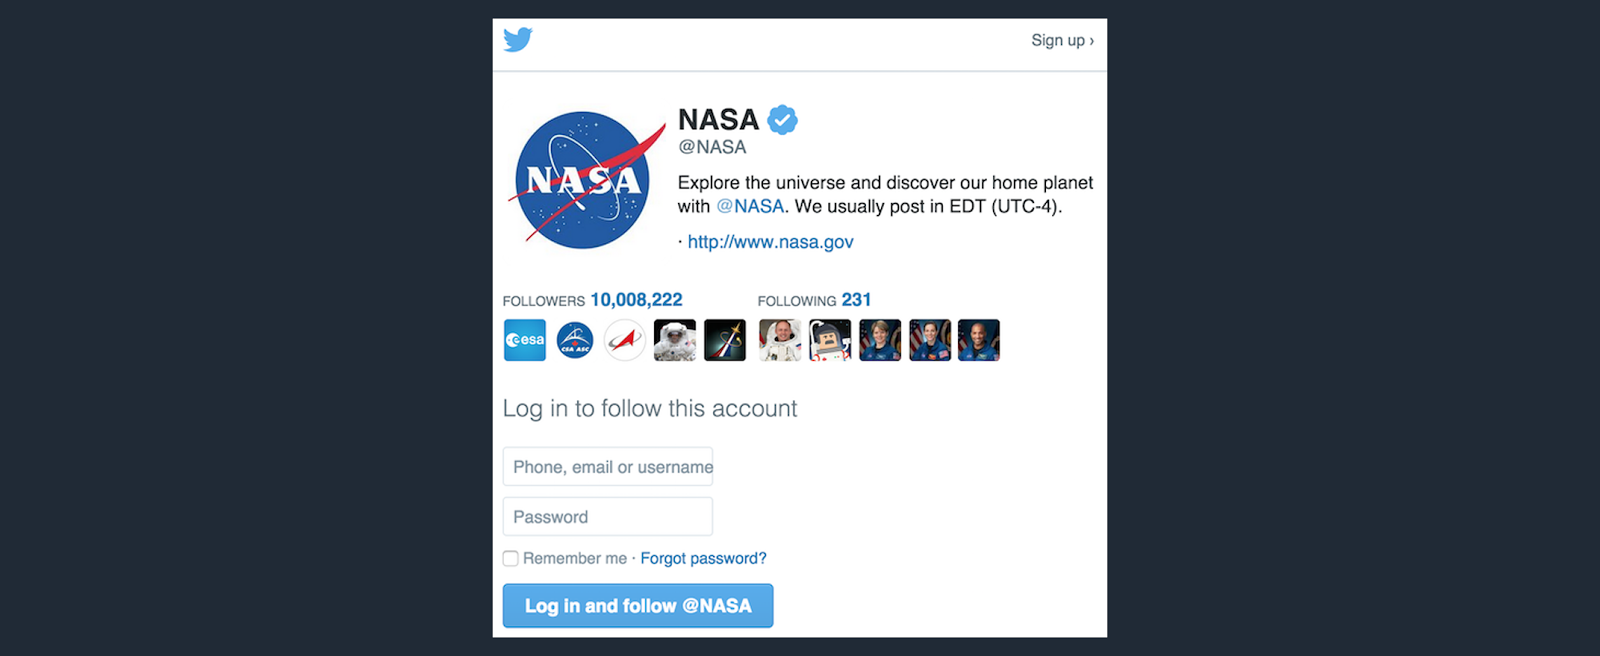 Twitter uses buttons to nudge their users to take desired actions